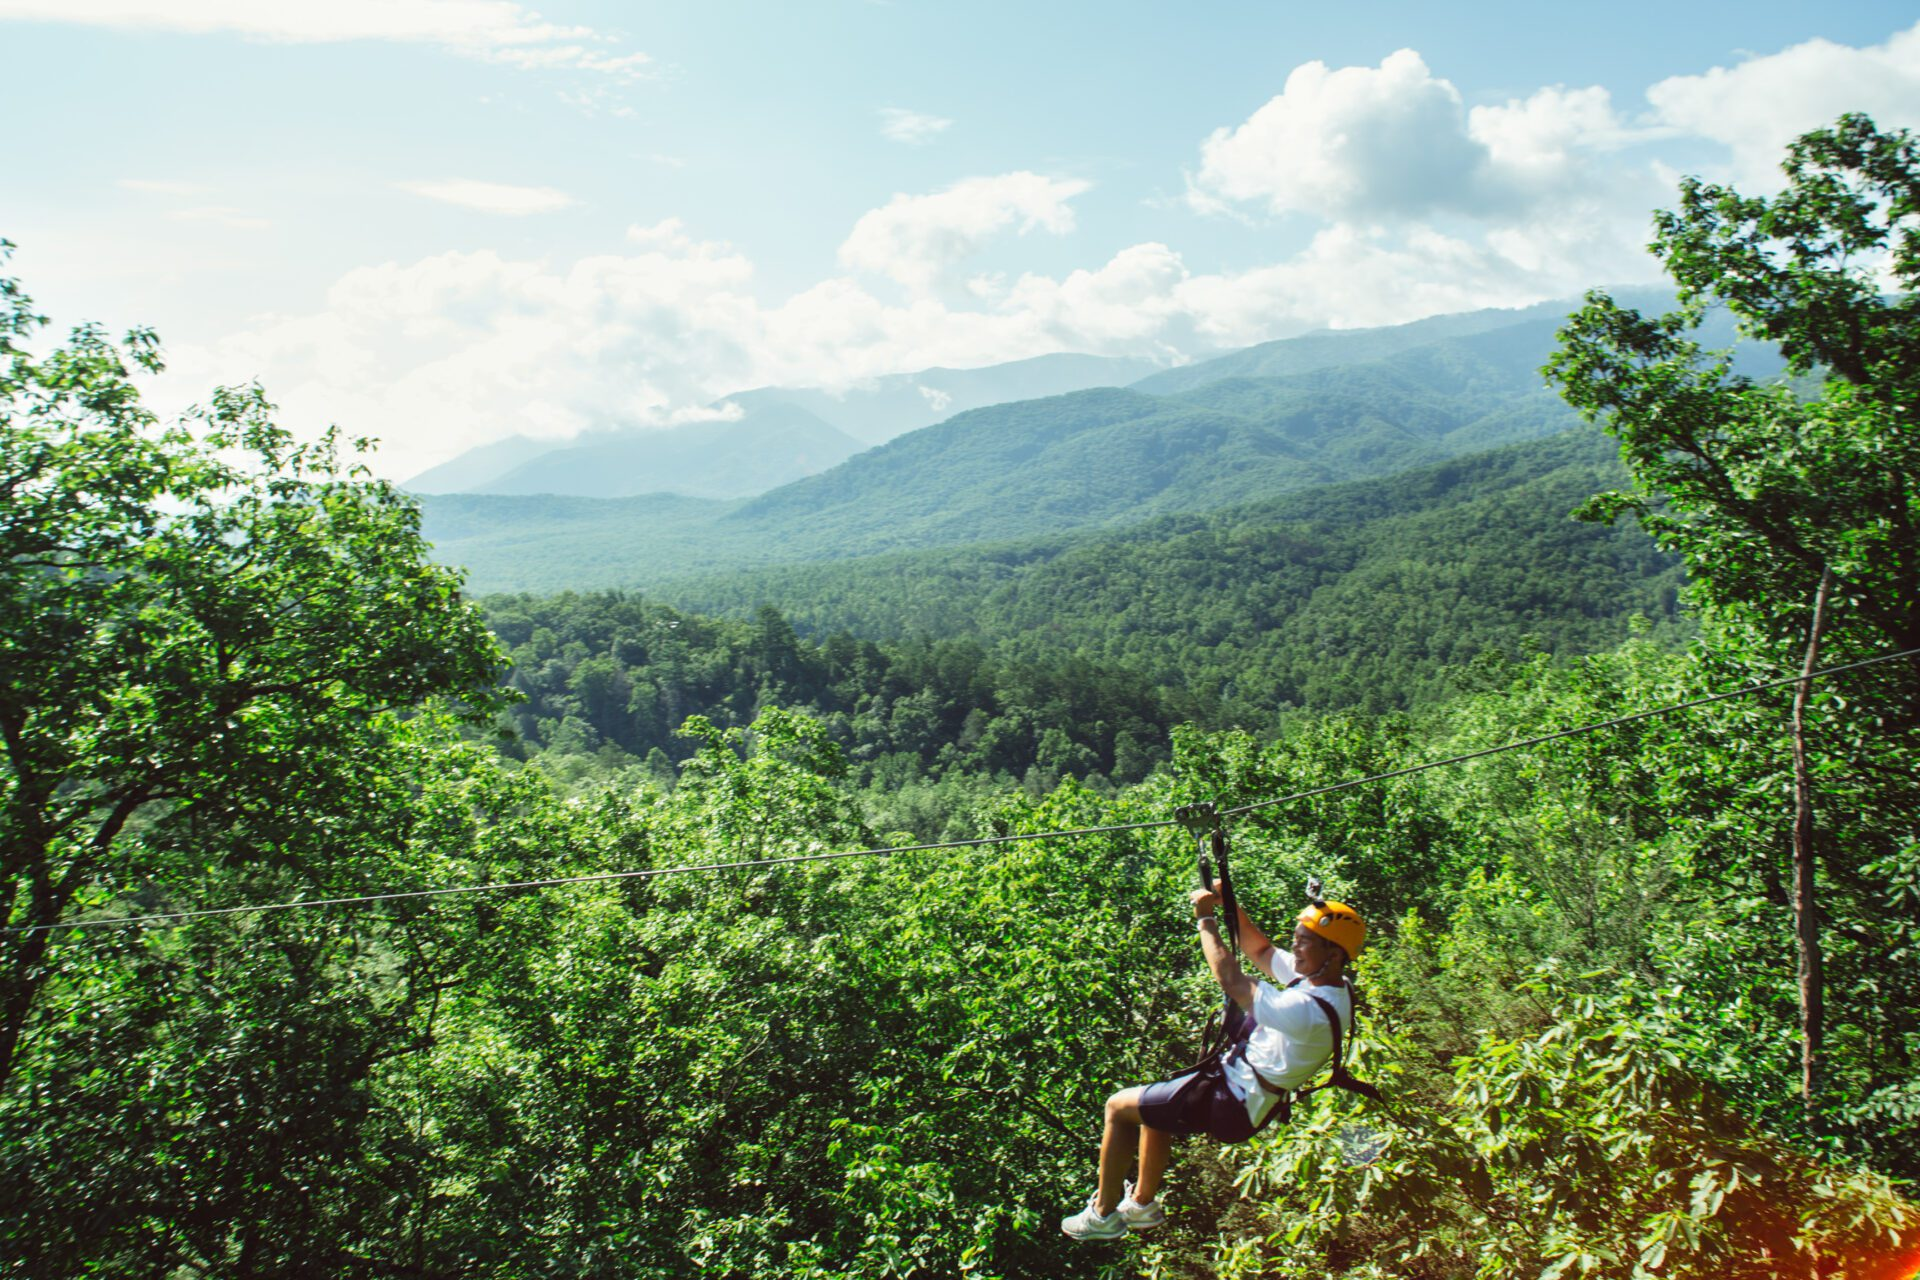 What to Pack for Your Smoky Mountain Zipline Adventure